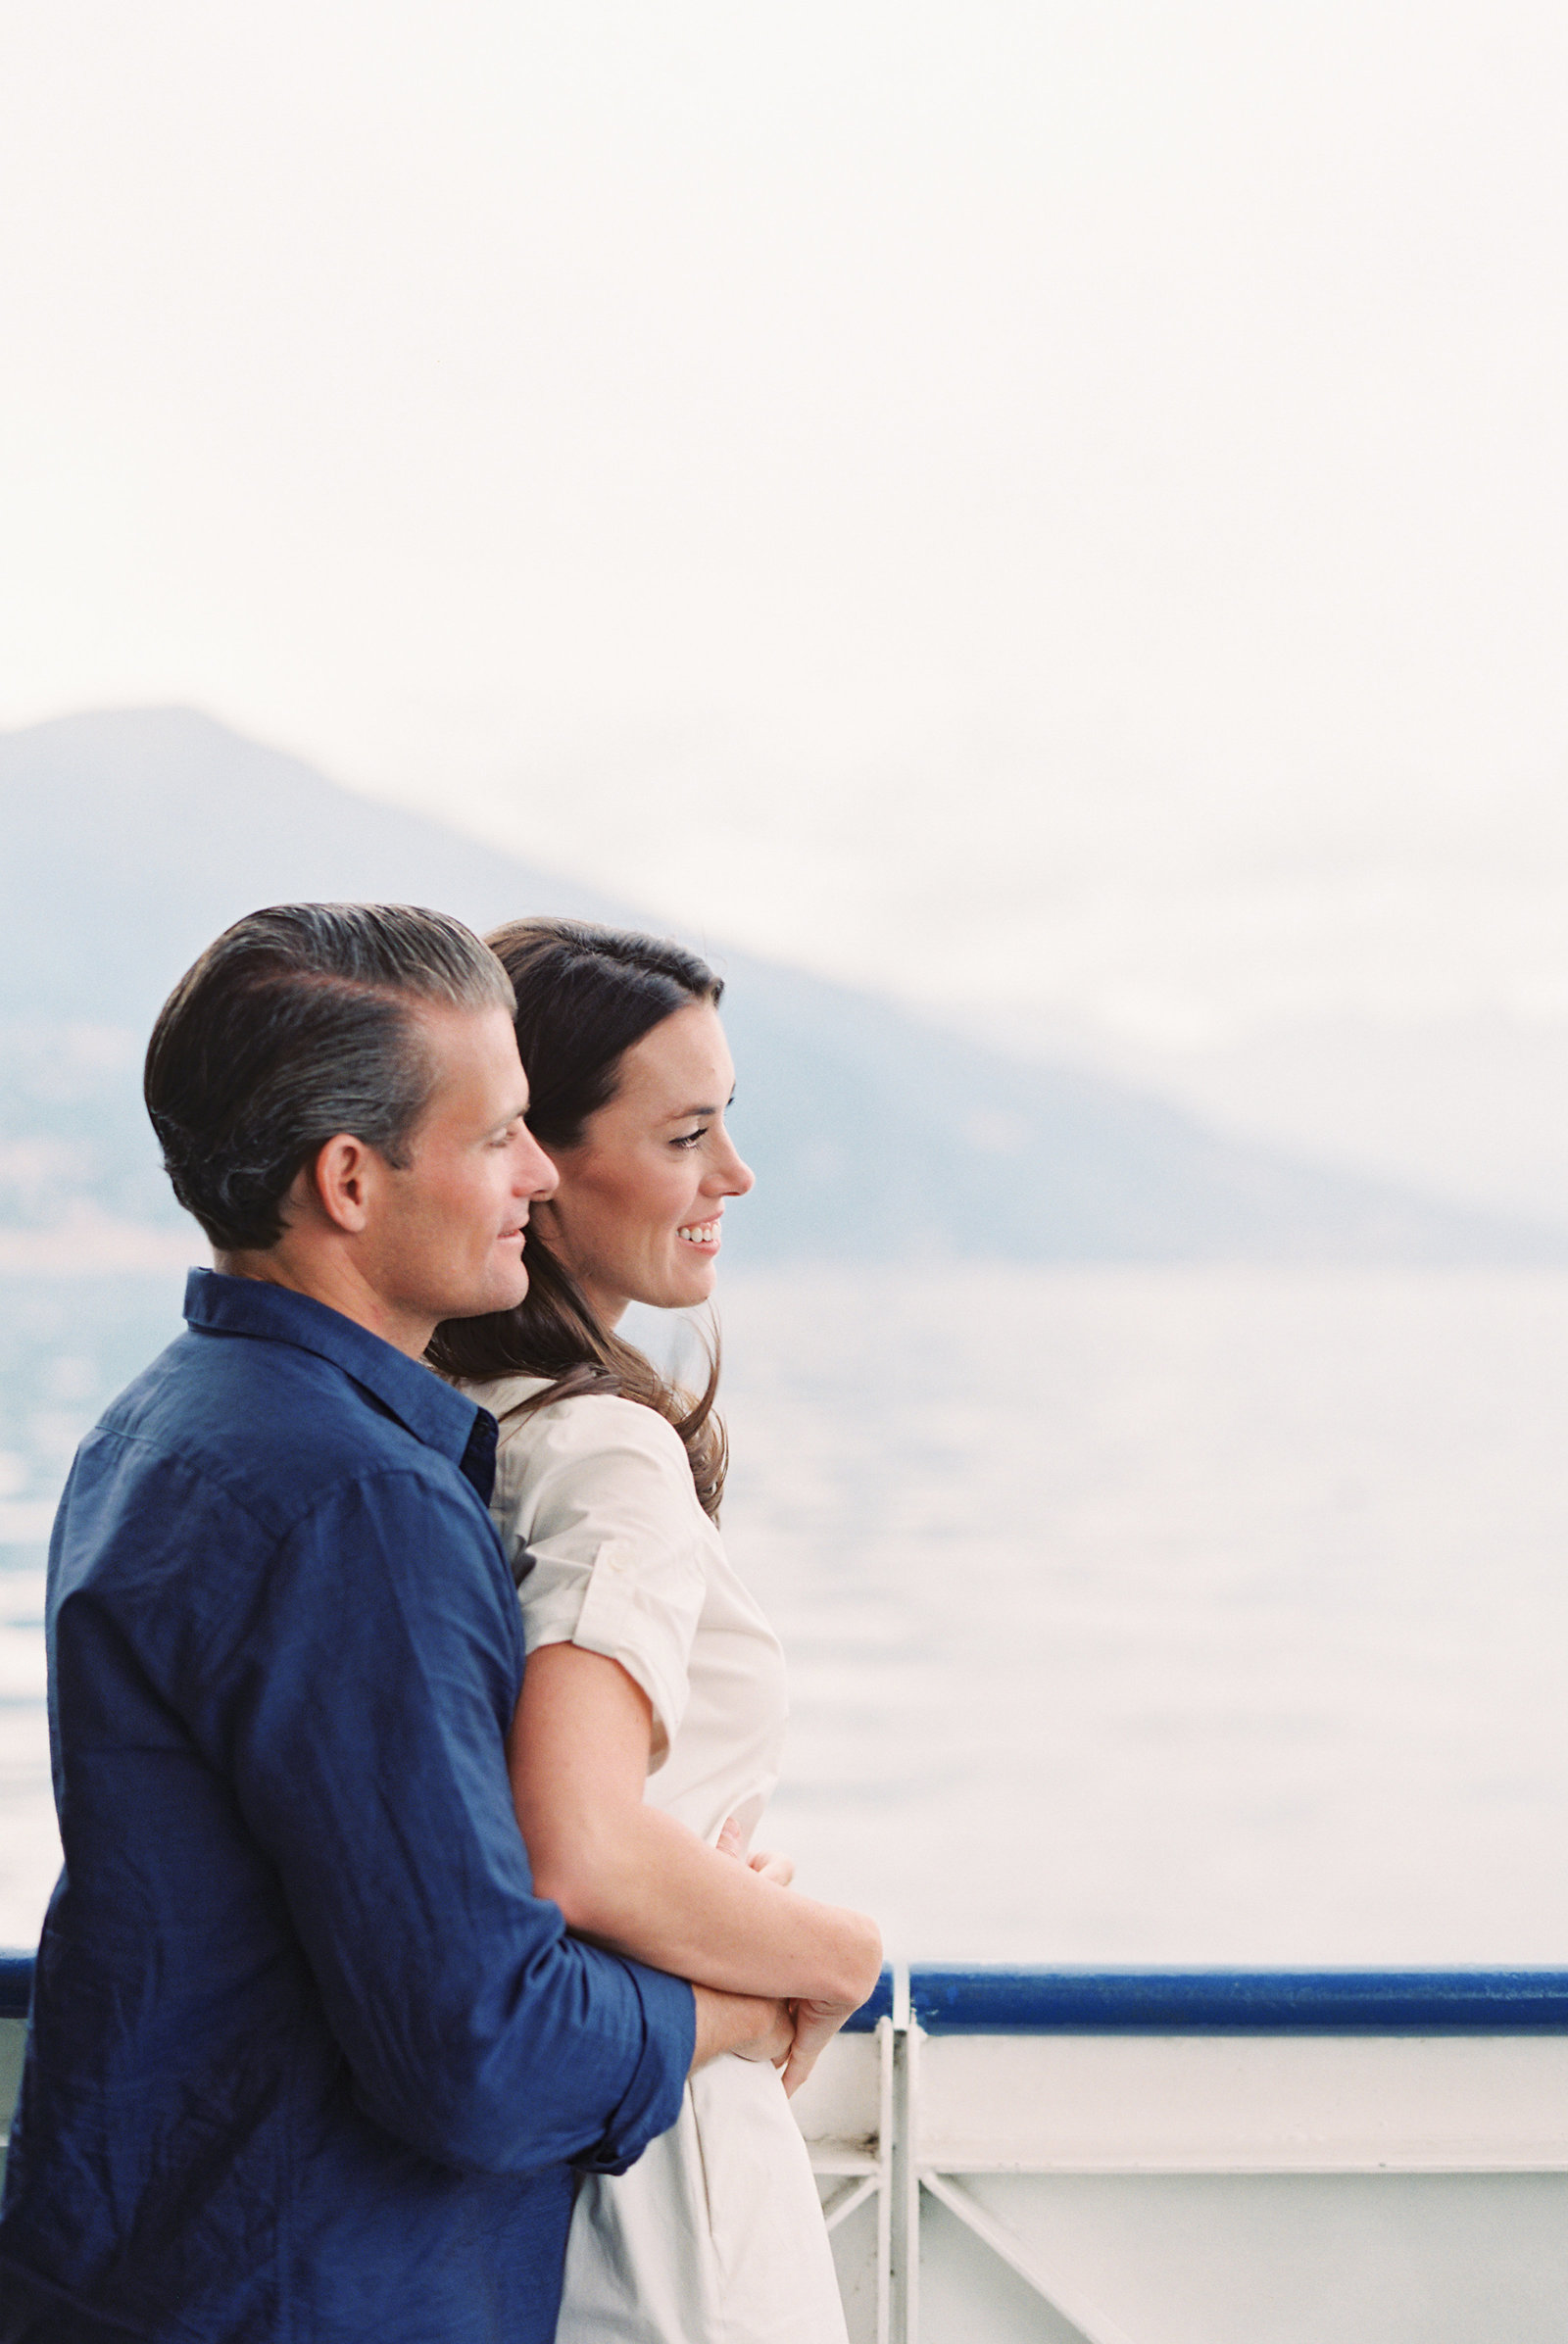 lake-como-italy-destination-wedding-honeymoon-session-melanie-gabrielle-photogrpahy-008